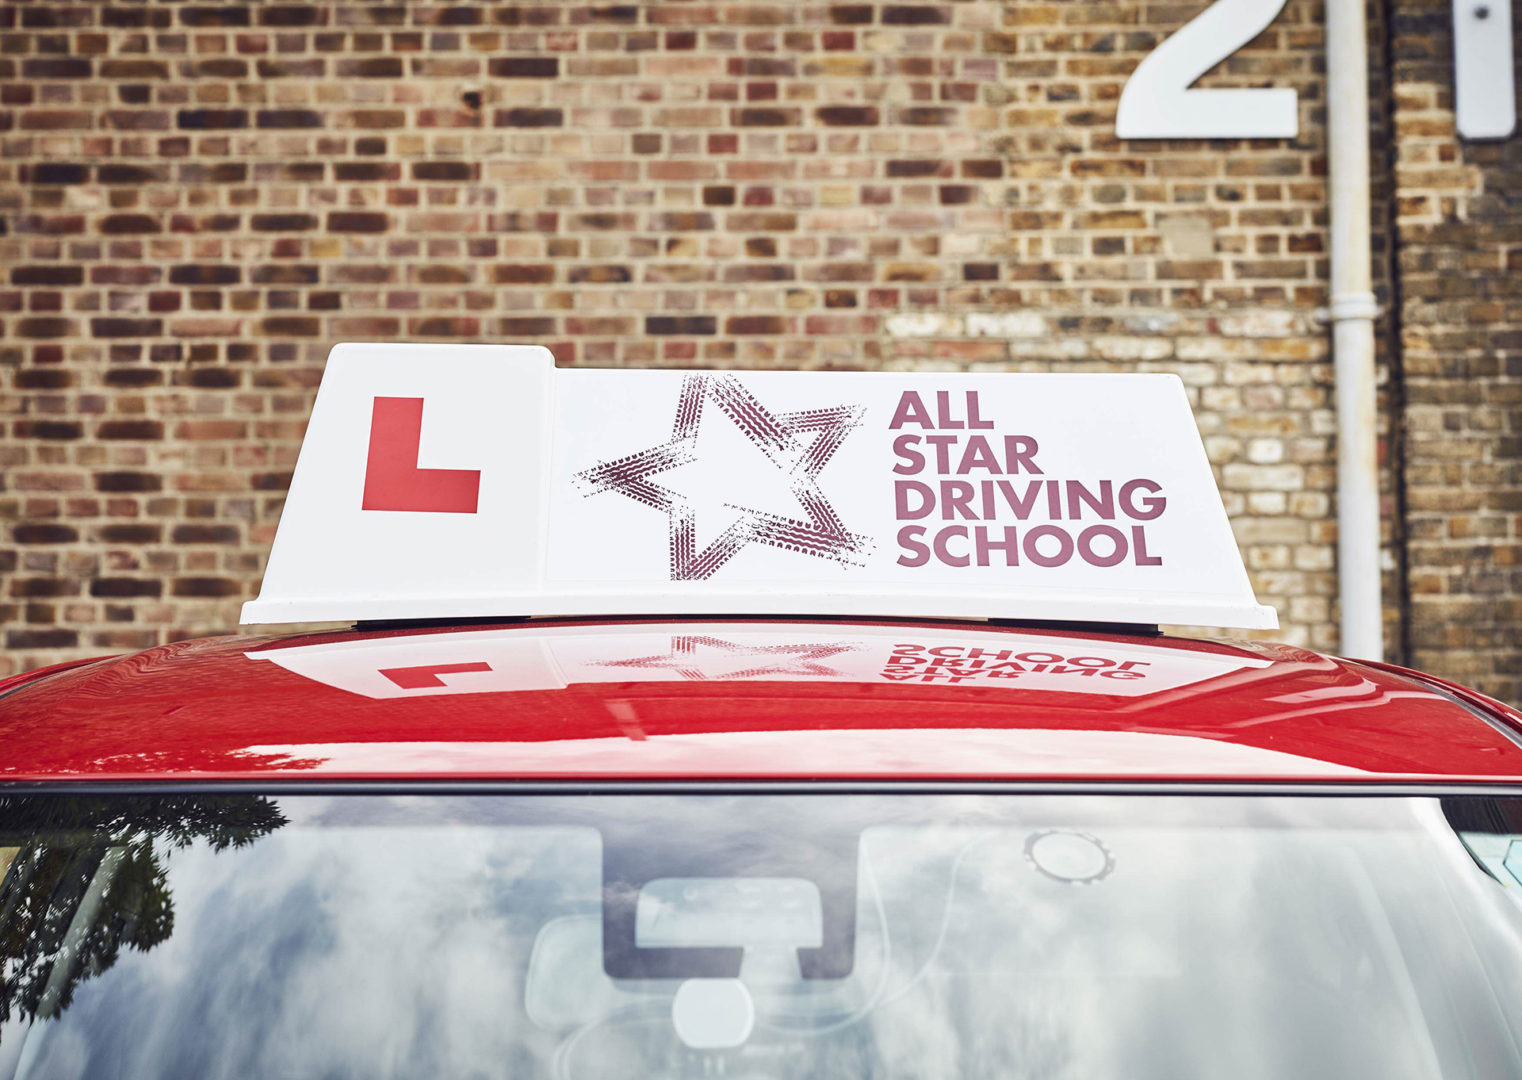 The Return of All Star Driving School